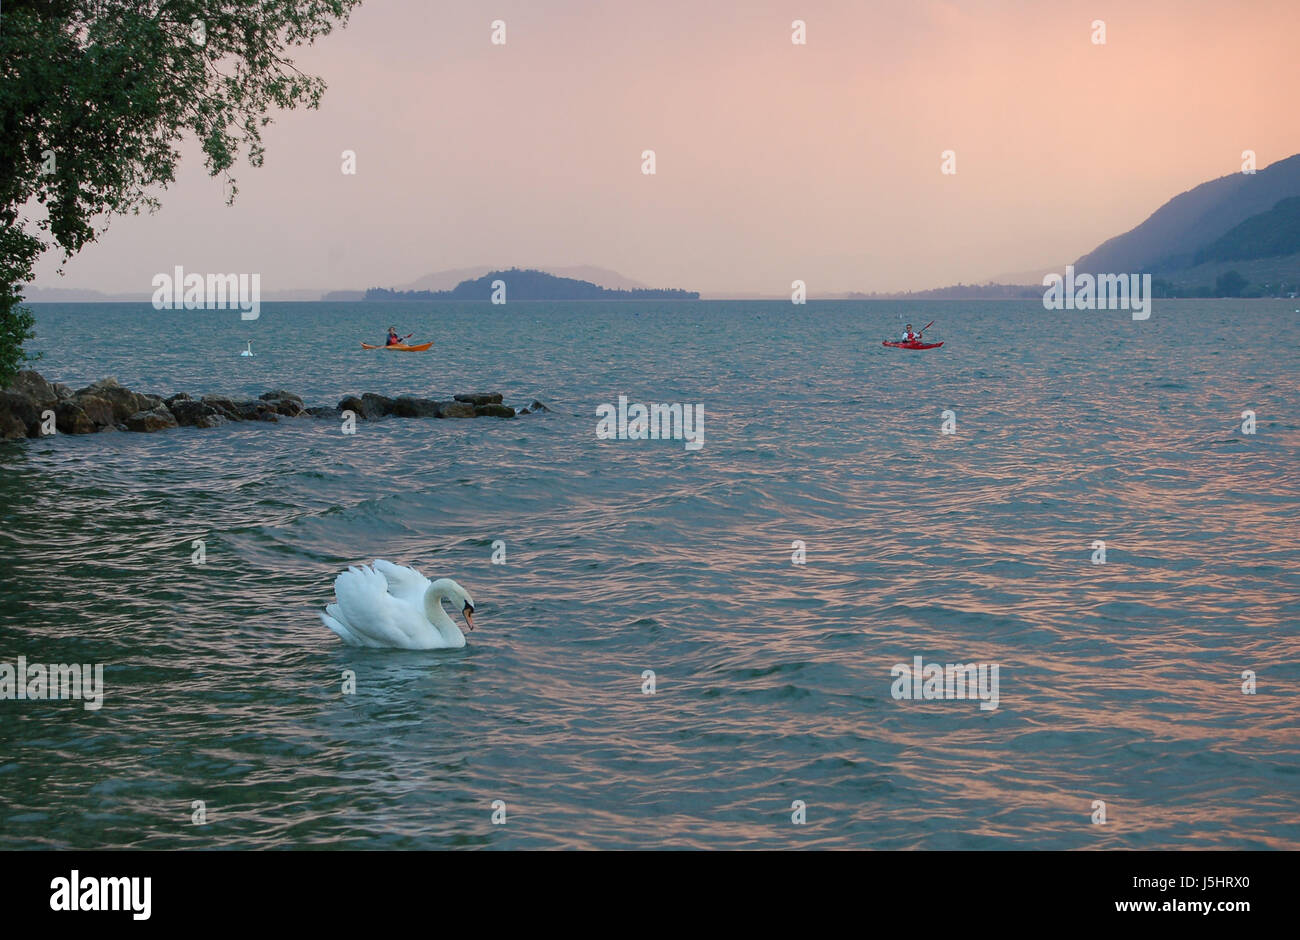 swan waves evening tendency thunder-storm breakwater salt water sea ocean water - Stock Image